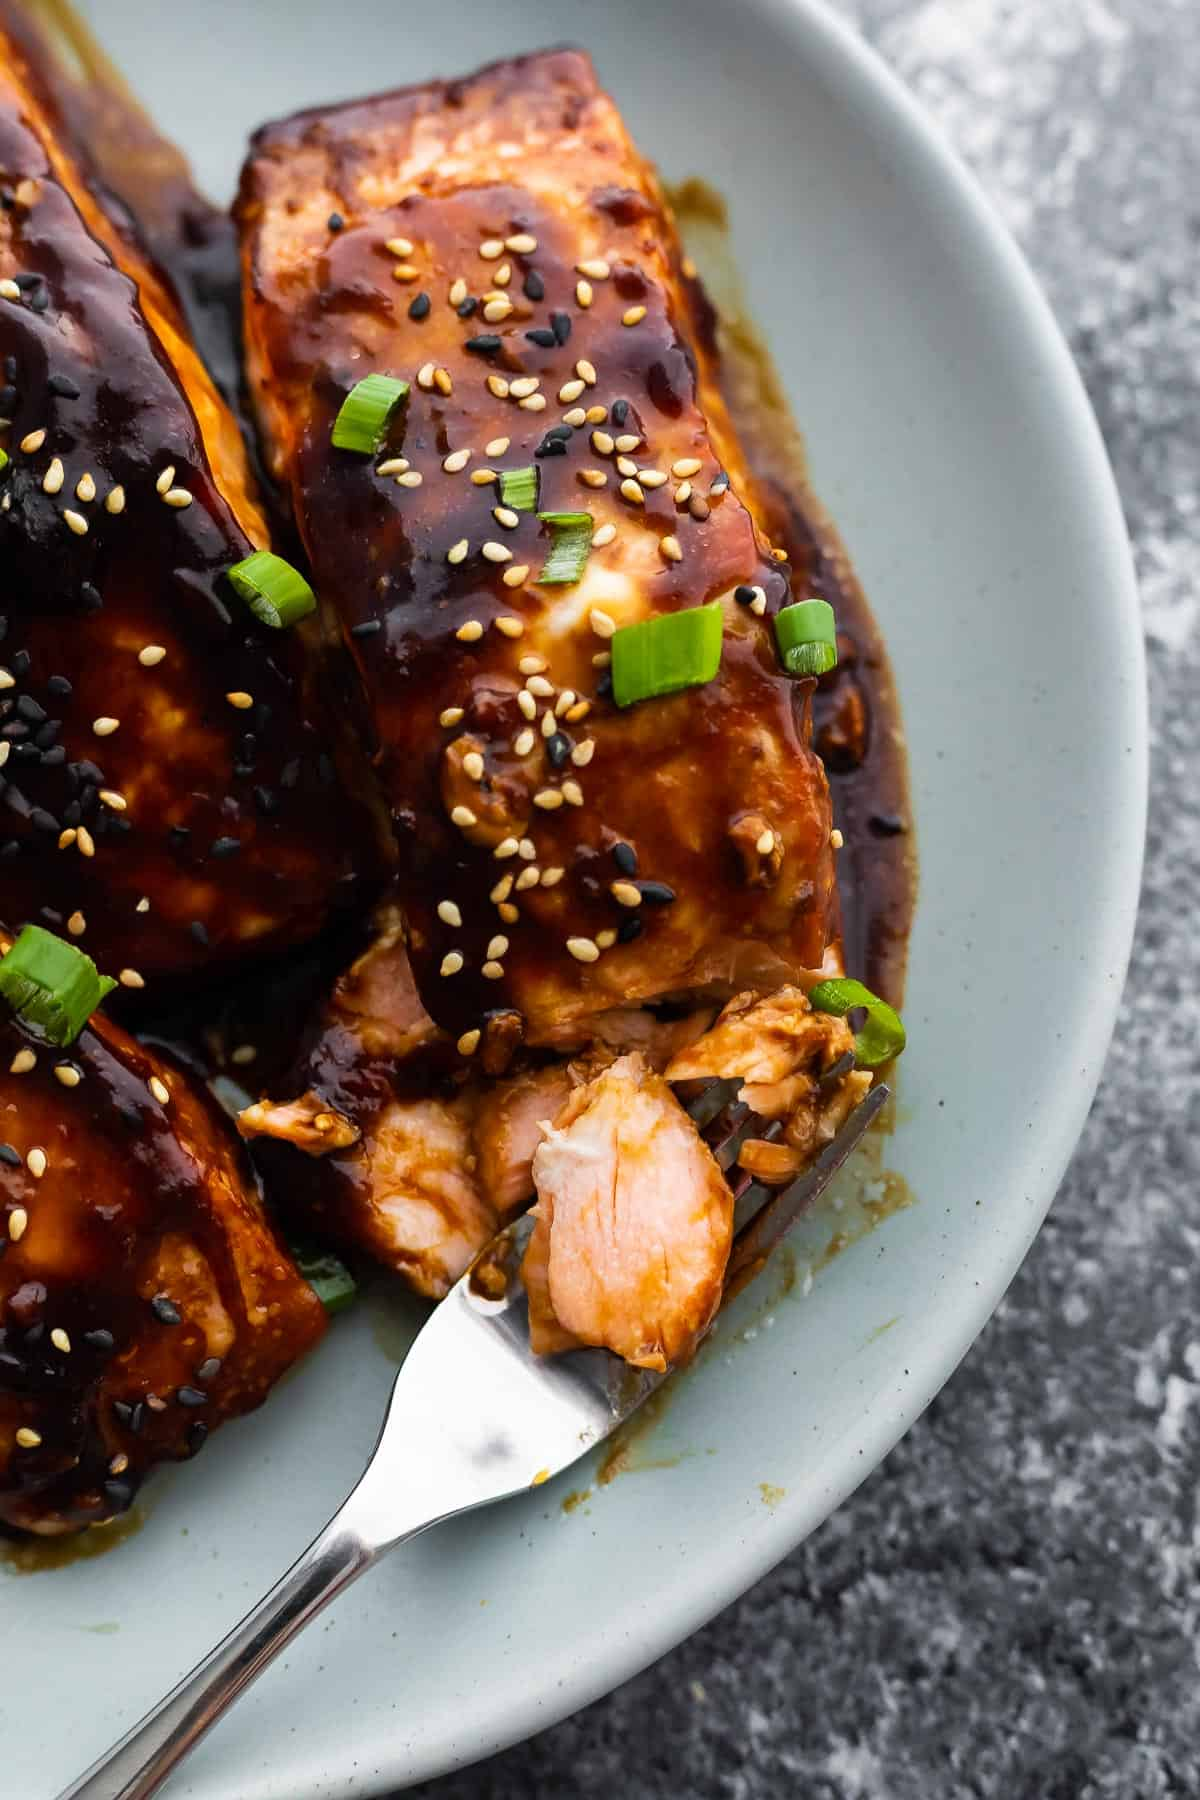 Close up of the teriyaki glazed salmon on the plate shown in the fork salmon